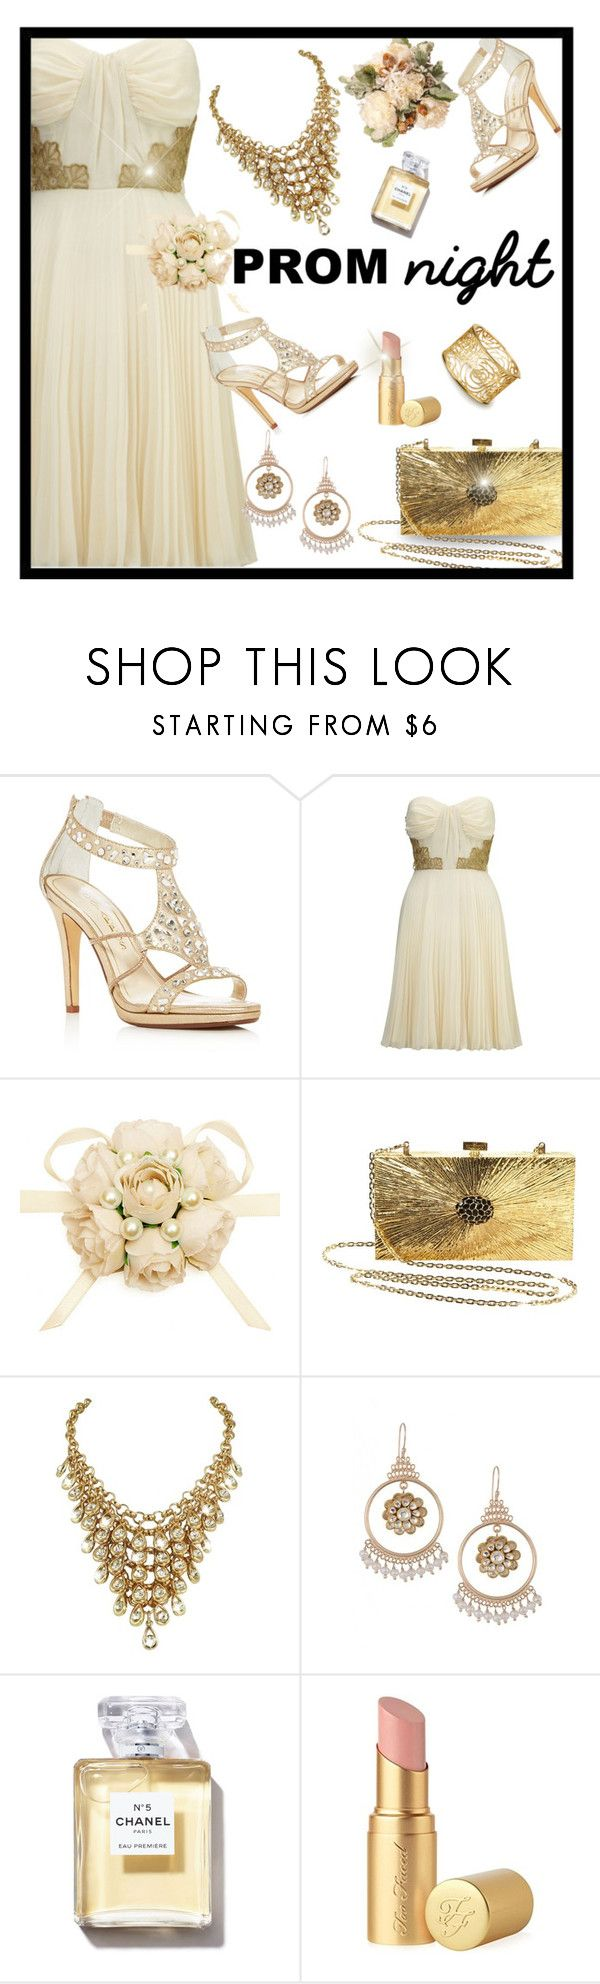 """""""Perfect Prom Night-Aphrodite"""" by majezy ❤ liked on Polyvore featuring Caparros, Lipsy, Valentino and Too Faced Cosmetics"""